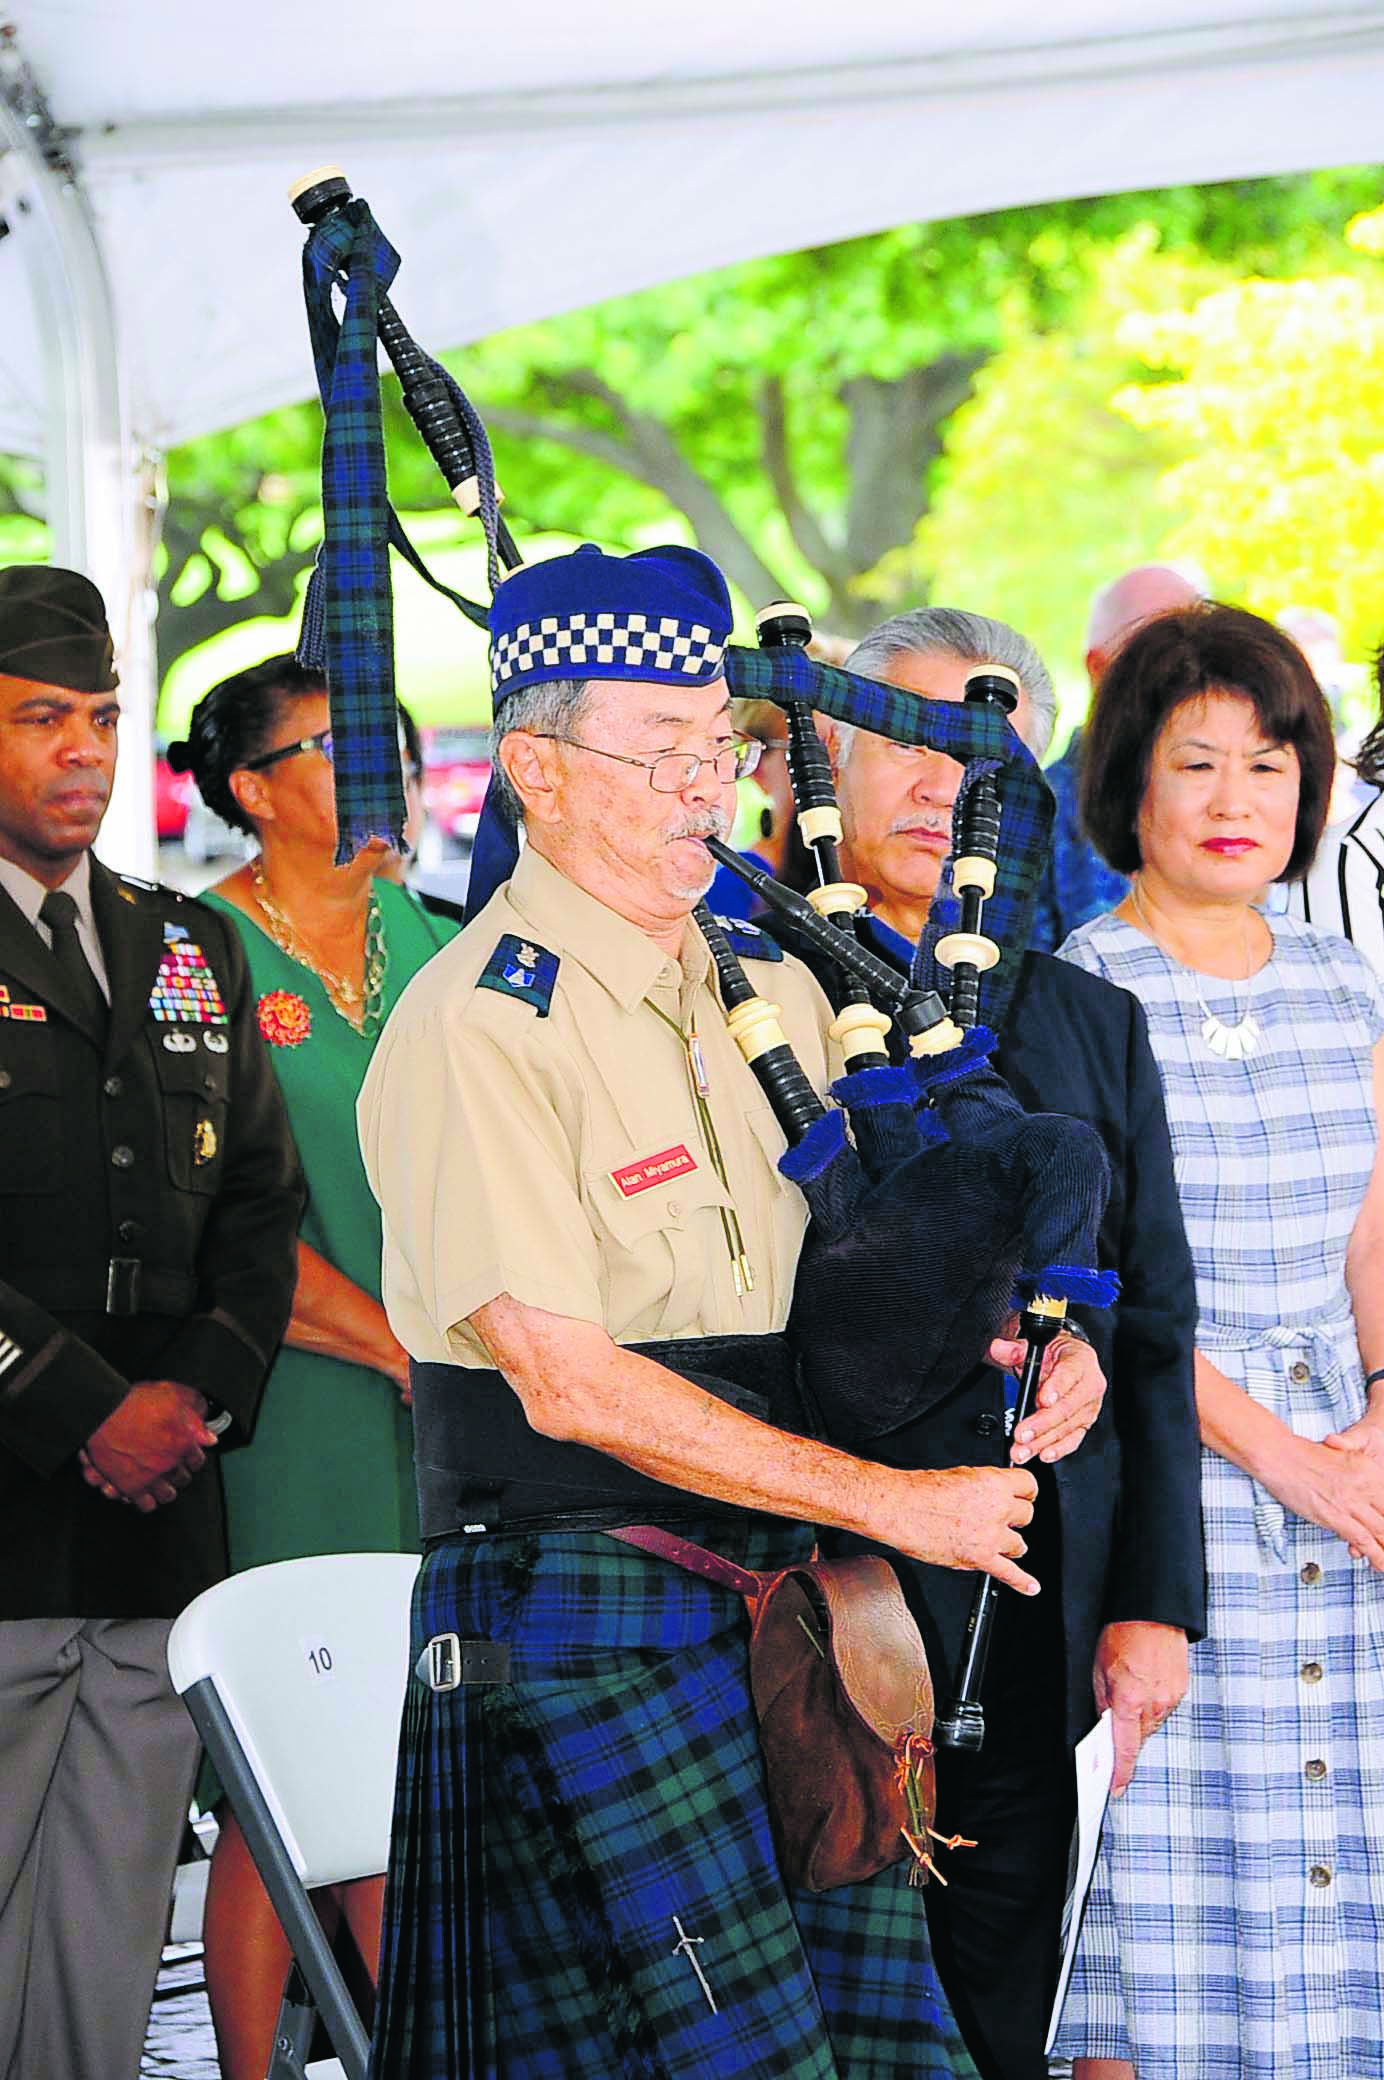 Alan Miyamura plays a musical rendition honoring the Nisei soldiers on his bagpipe.